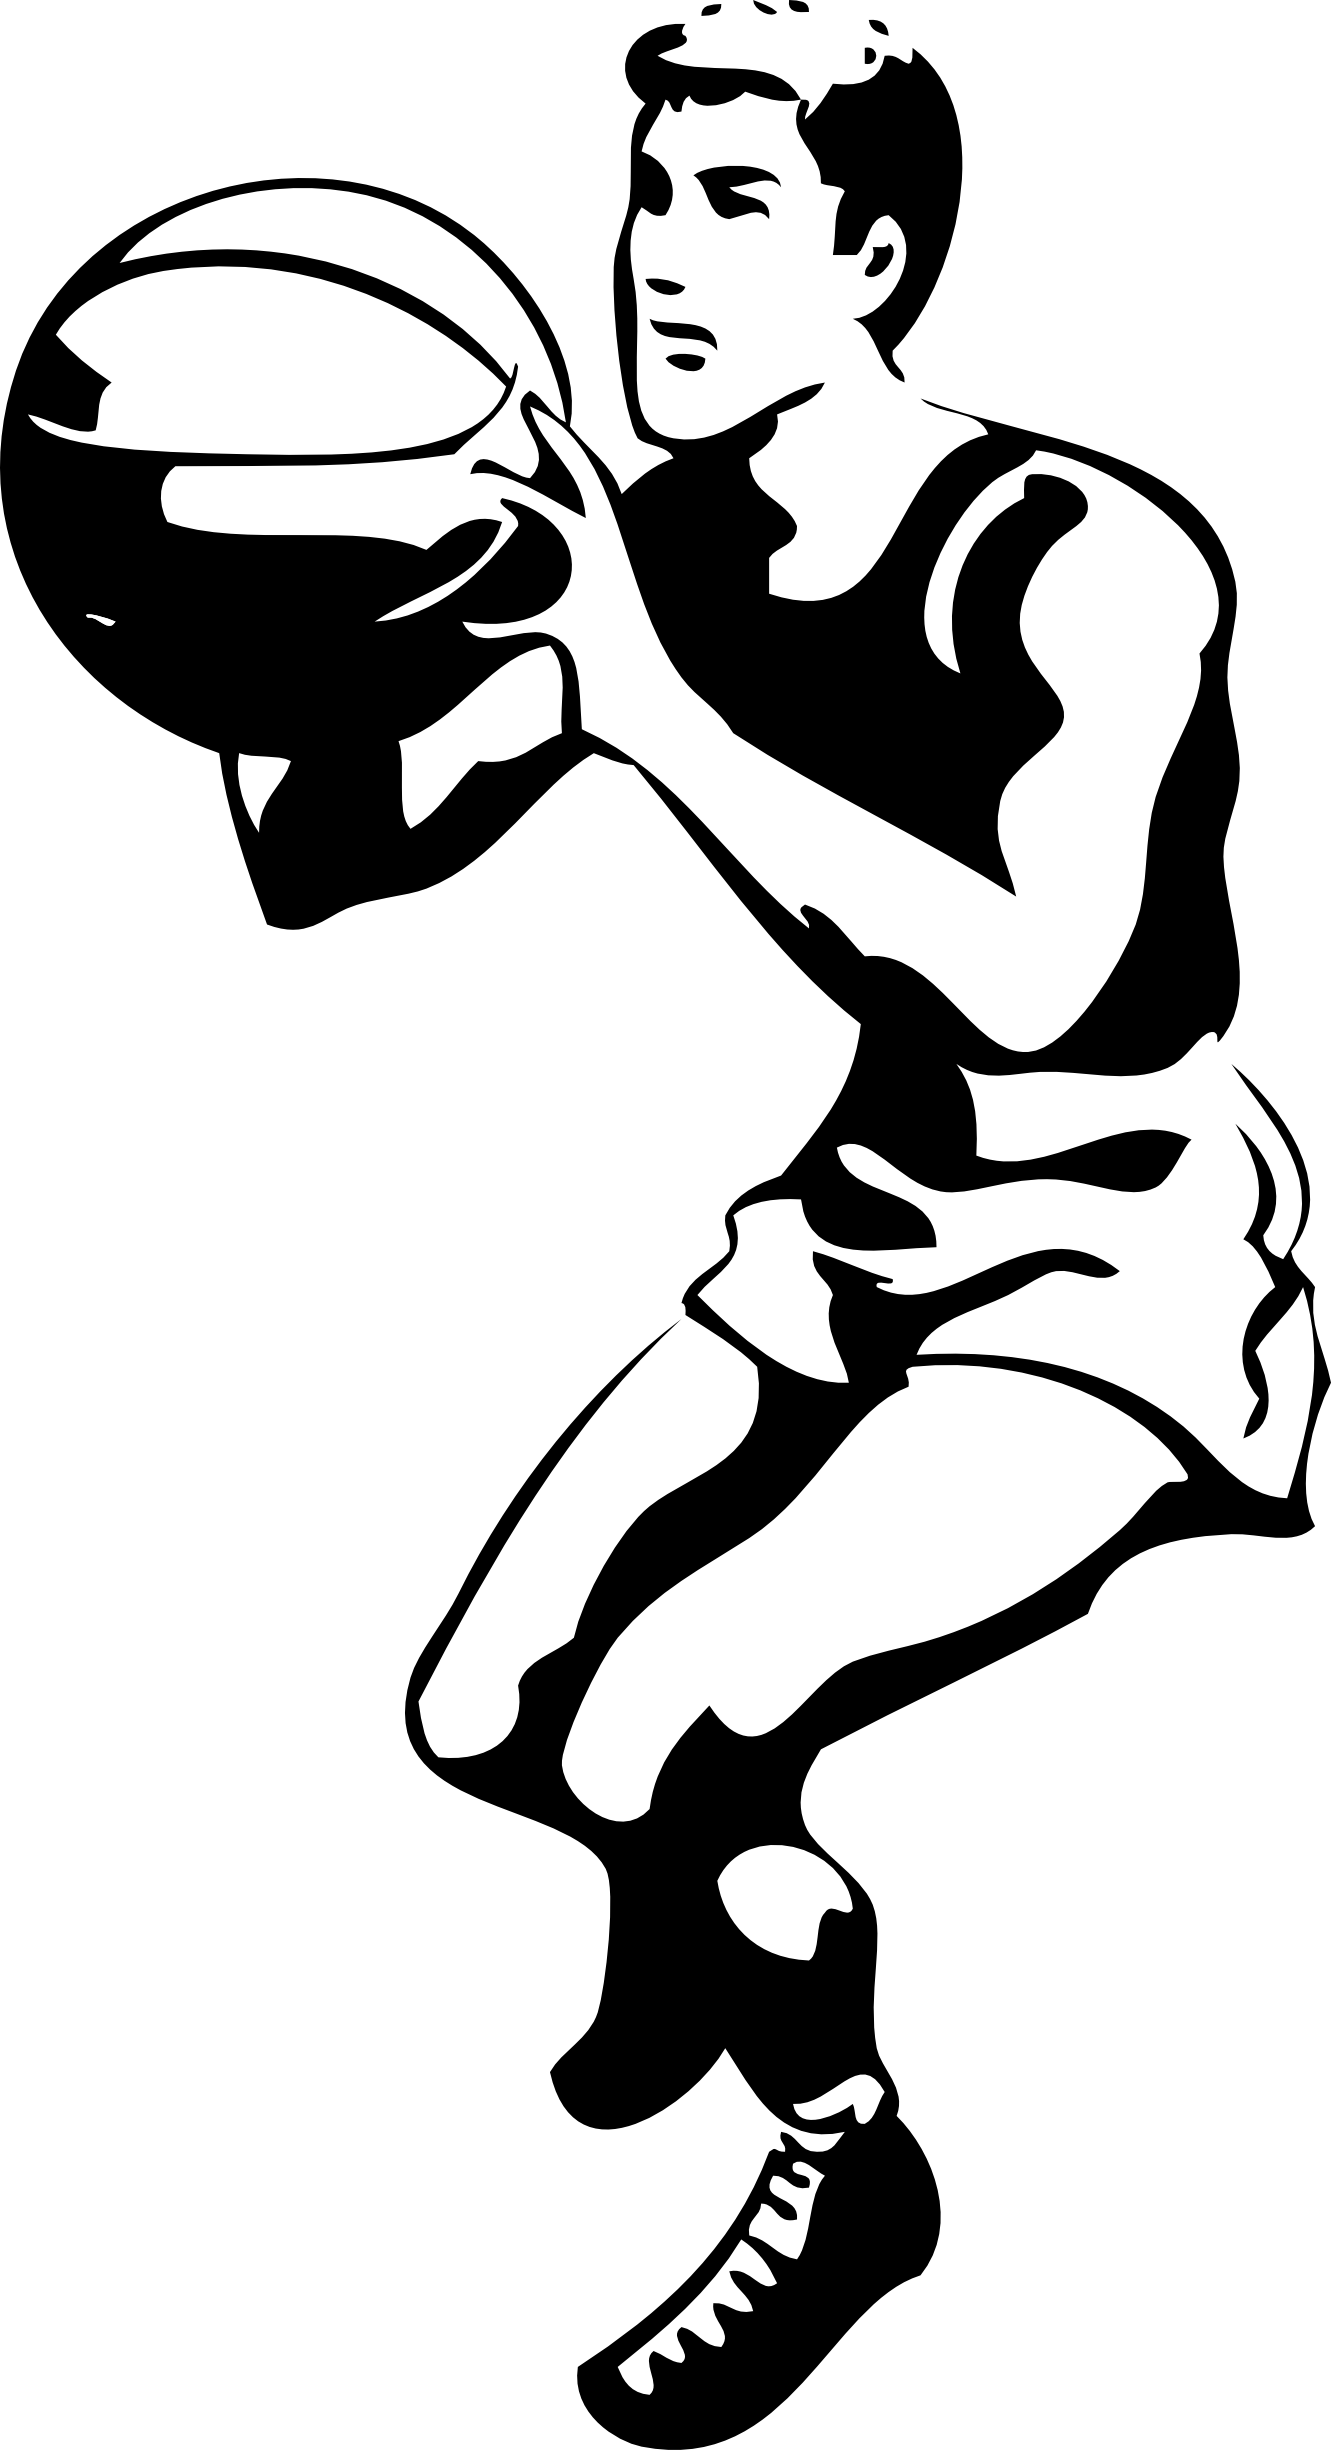 Basketball players clipart free jpg stock Basketball Player Clipart Black And White | Clipart Panda - Free ... jpg stock